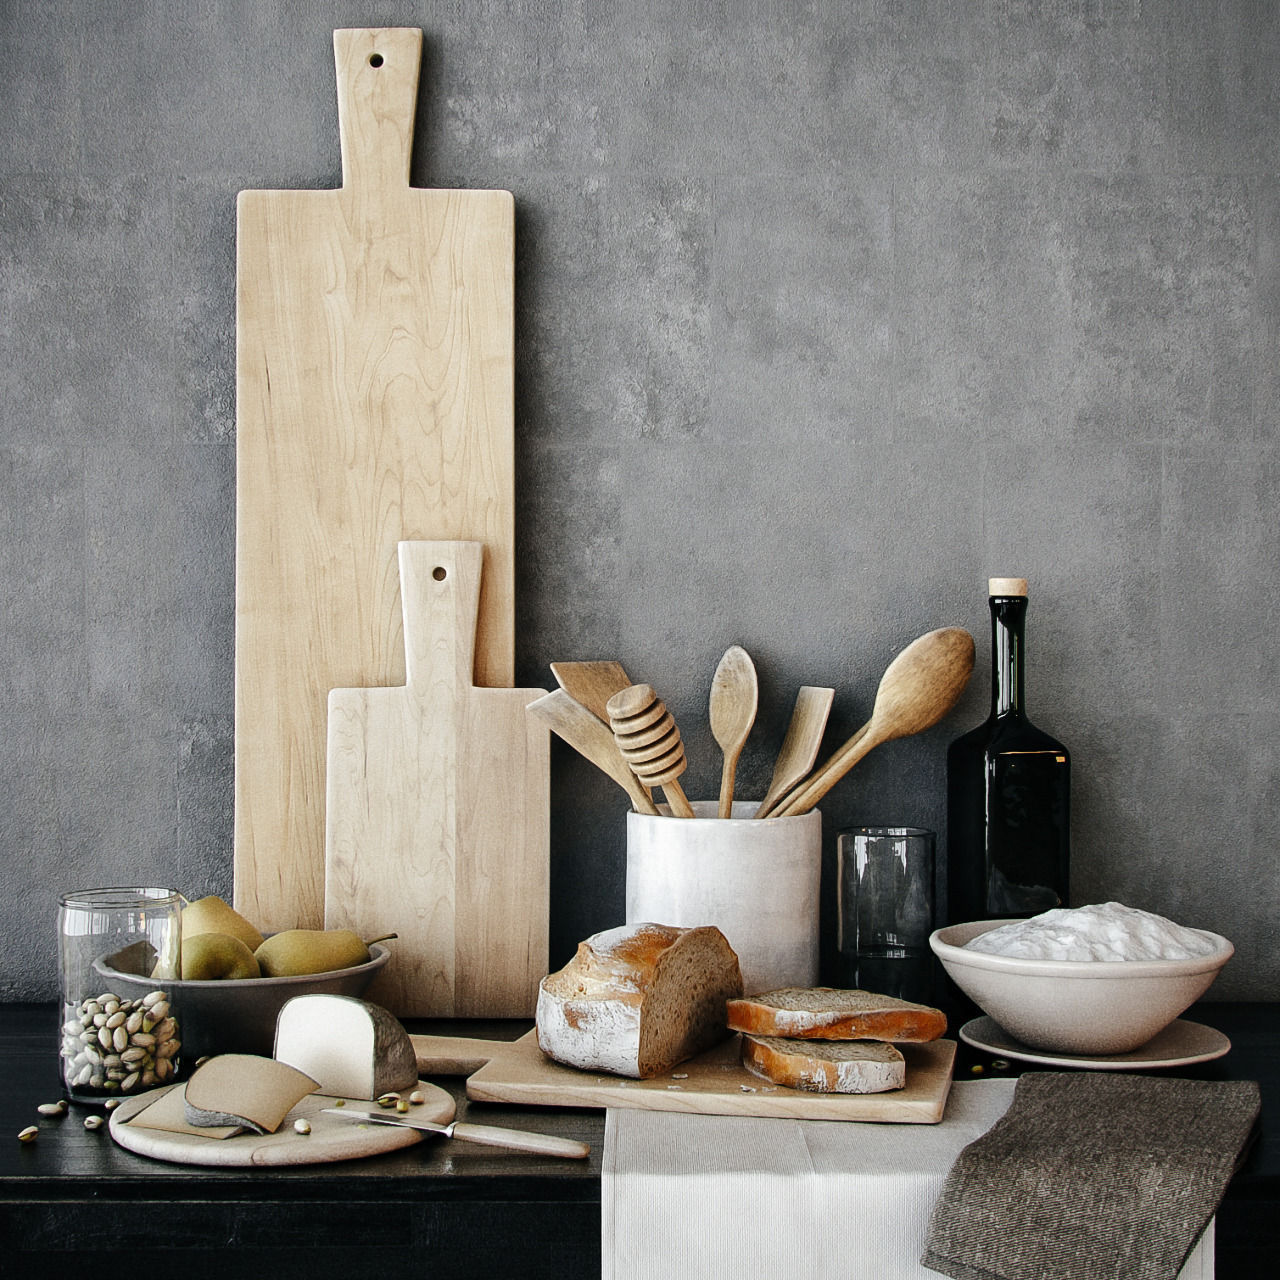 Decoration for kitchen table